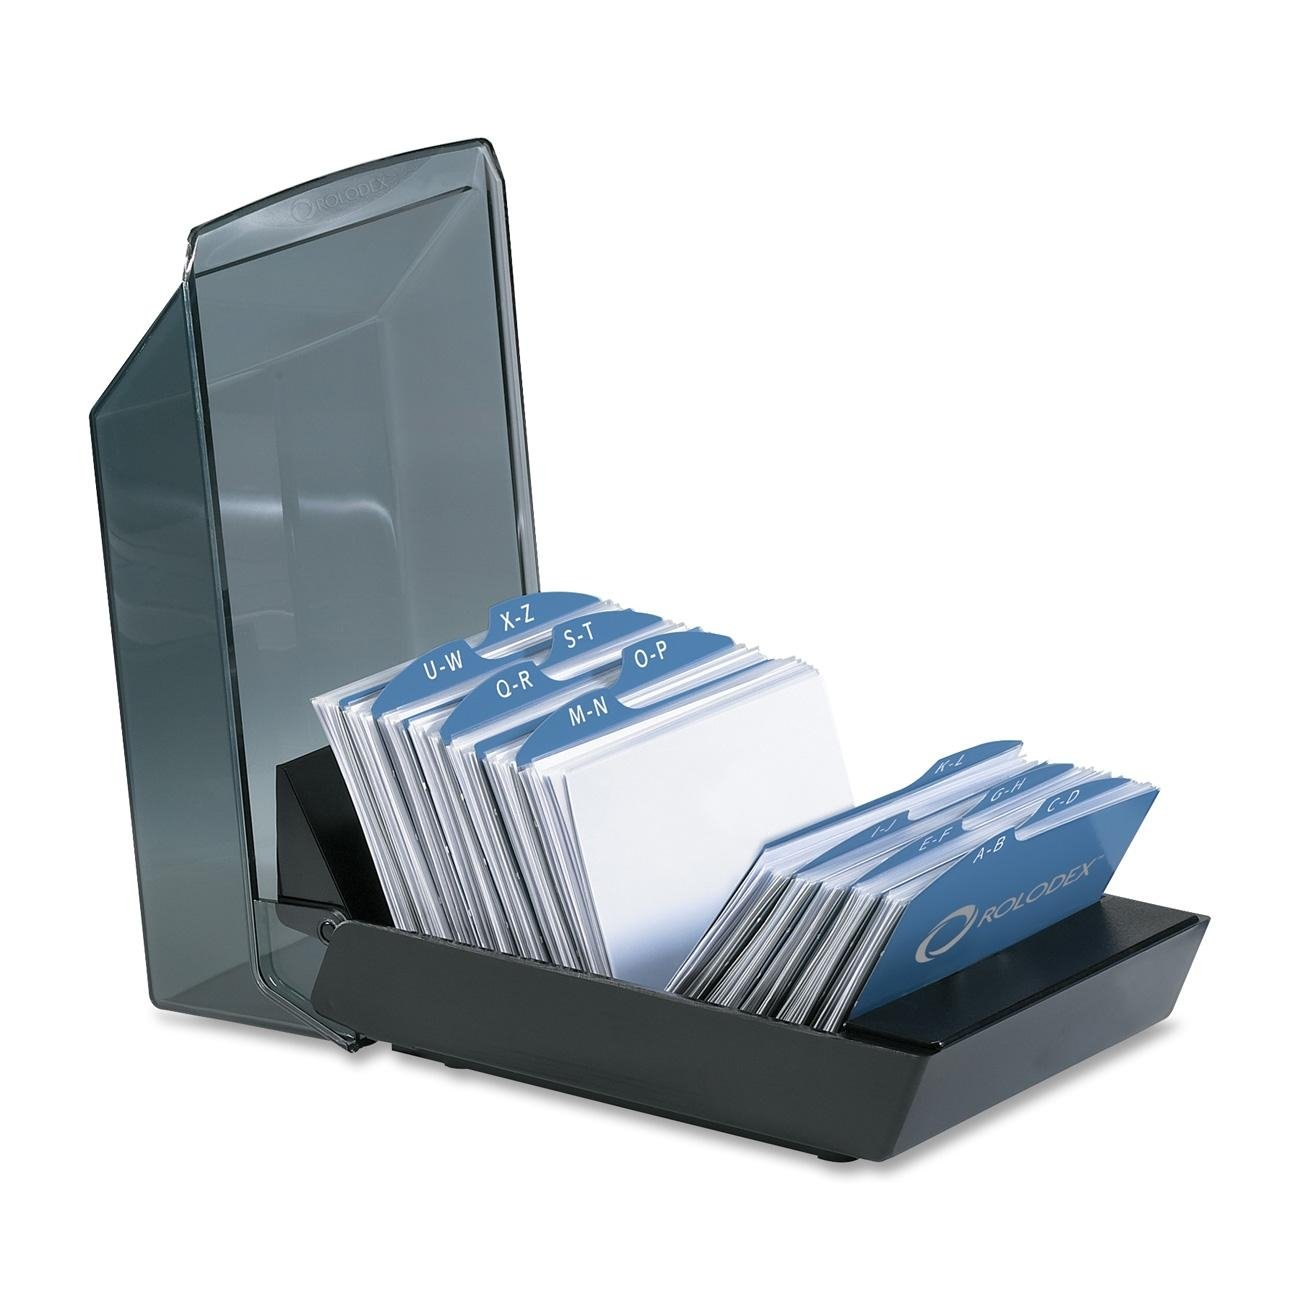 Rolodex Business Card Tray Black Small: Amazon.co.uk: Office Products